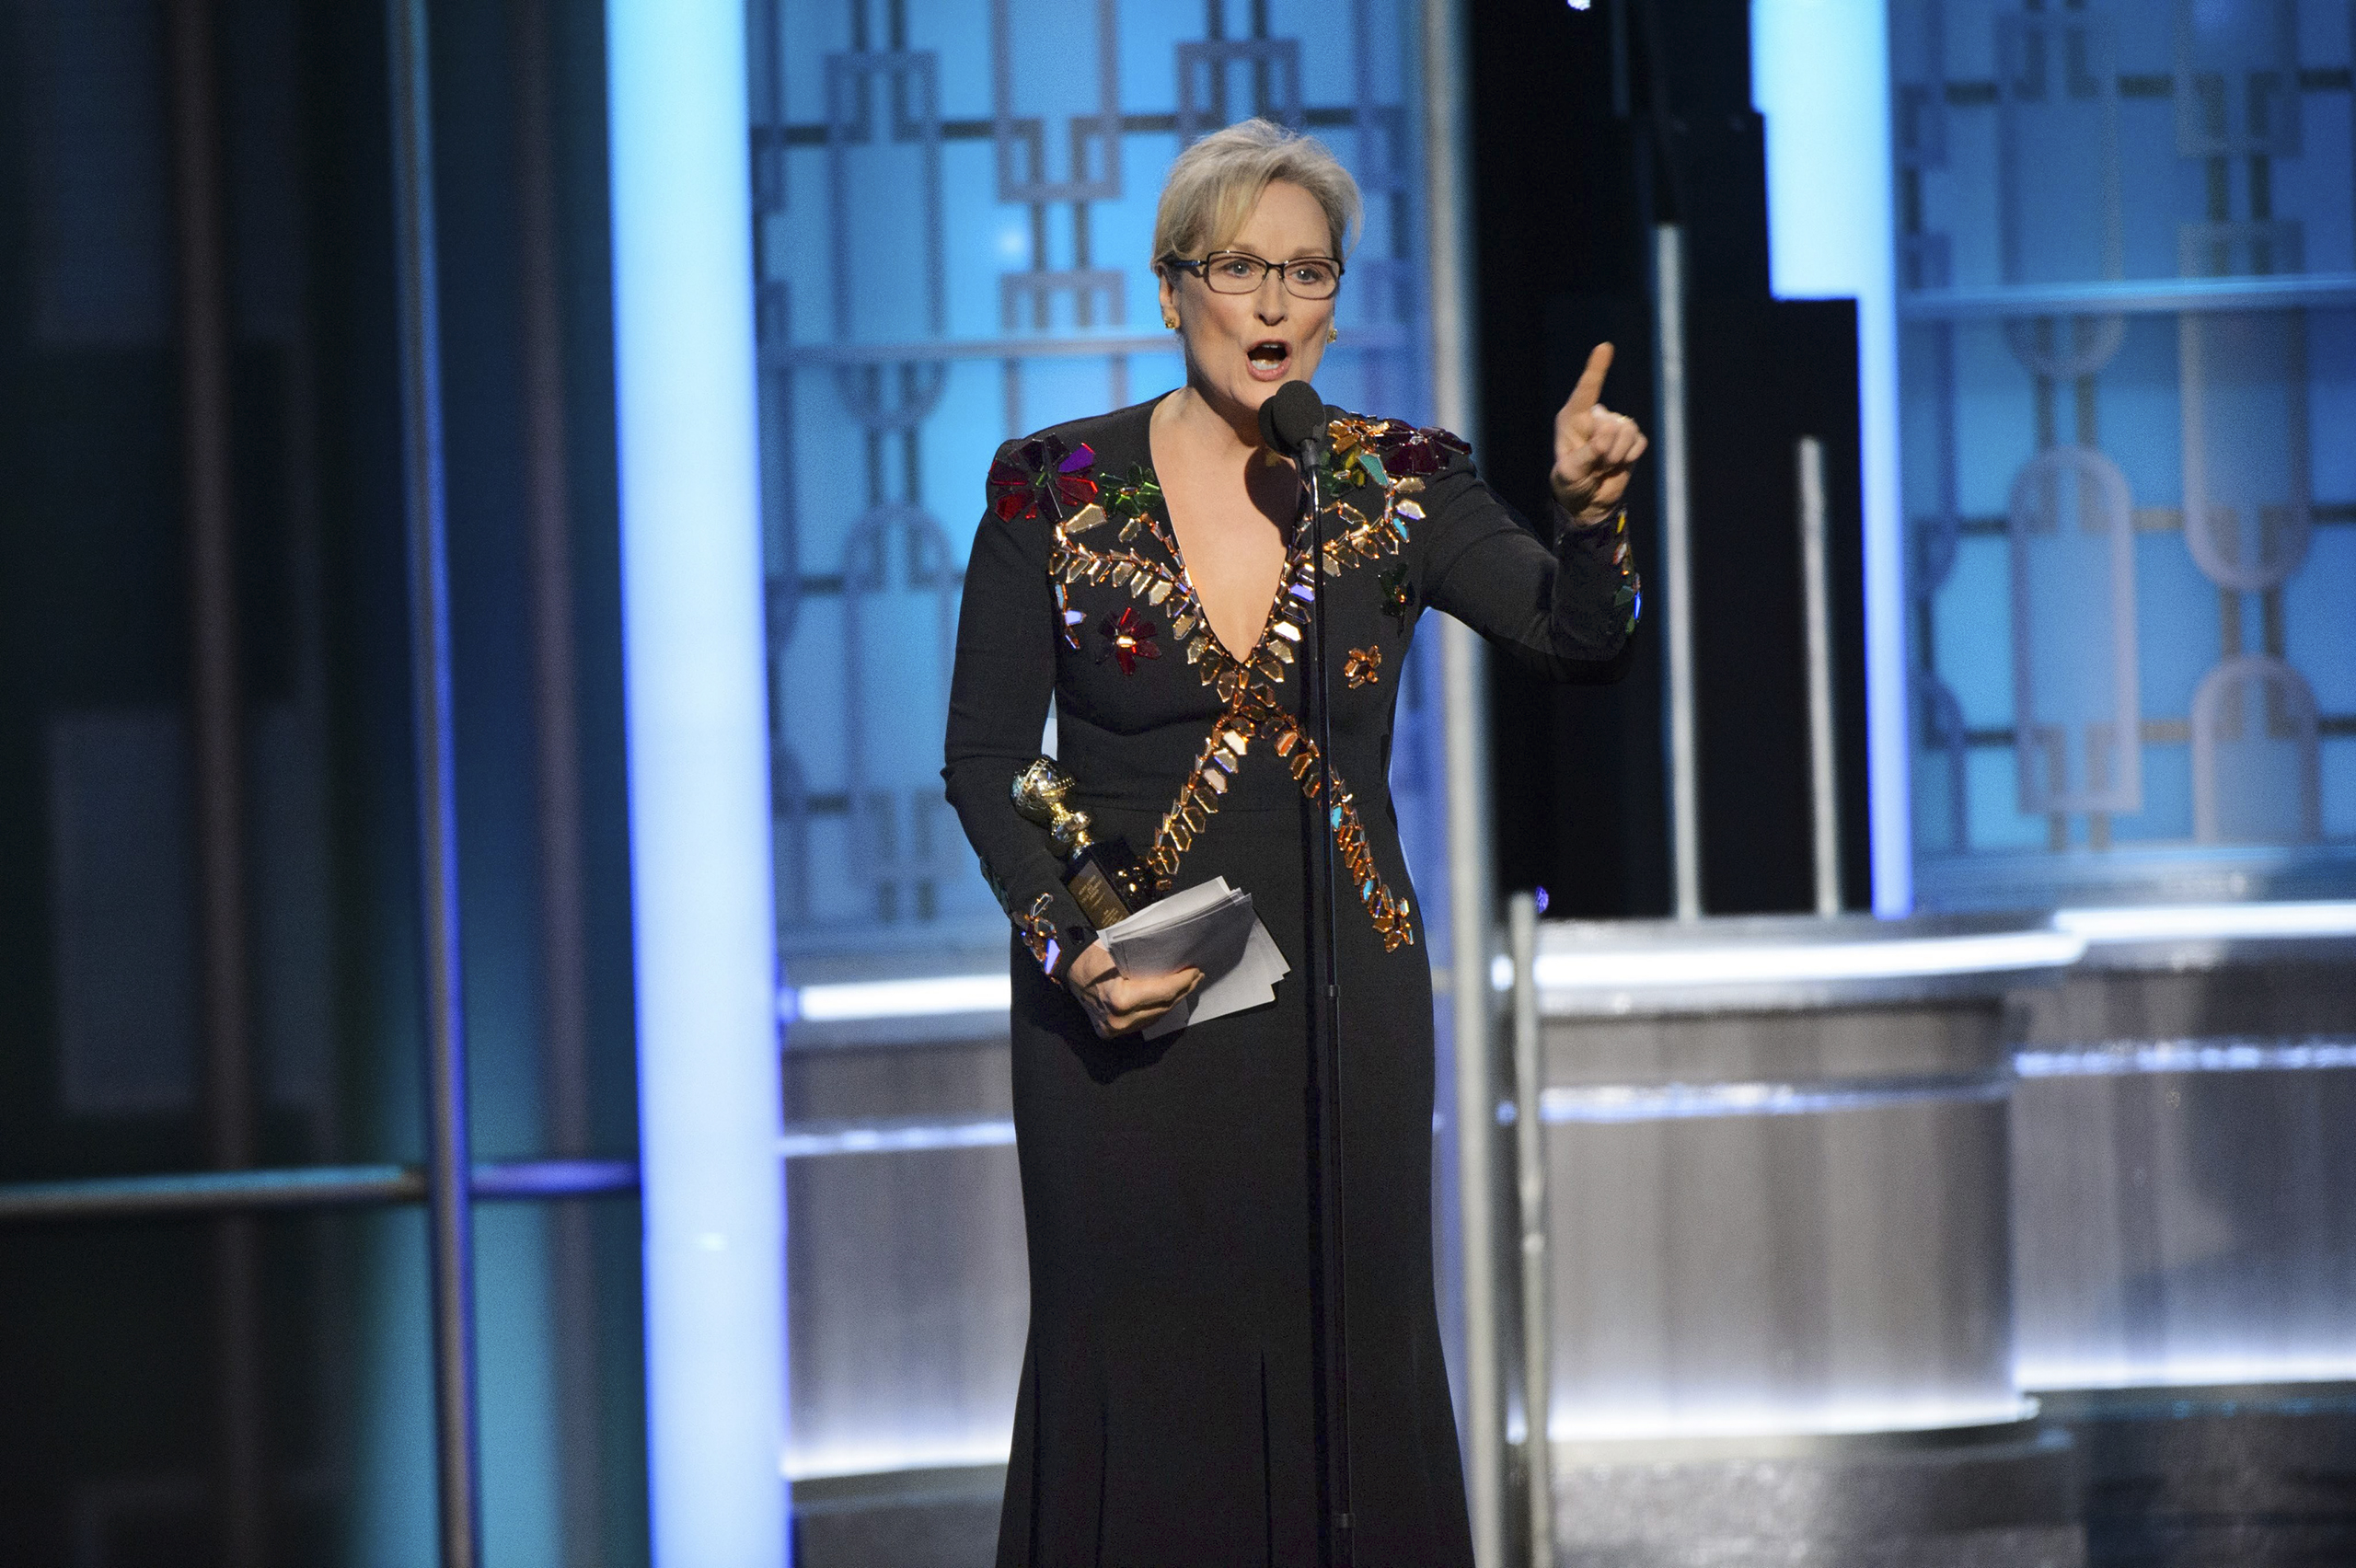 Meryl Streep joined Hollywood's long line of political dissenters at the Jan. 8 Golden Globes